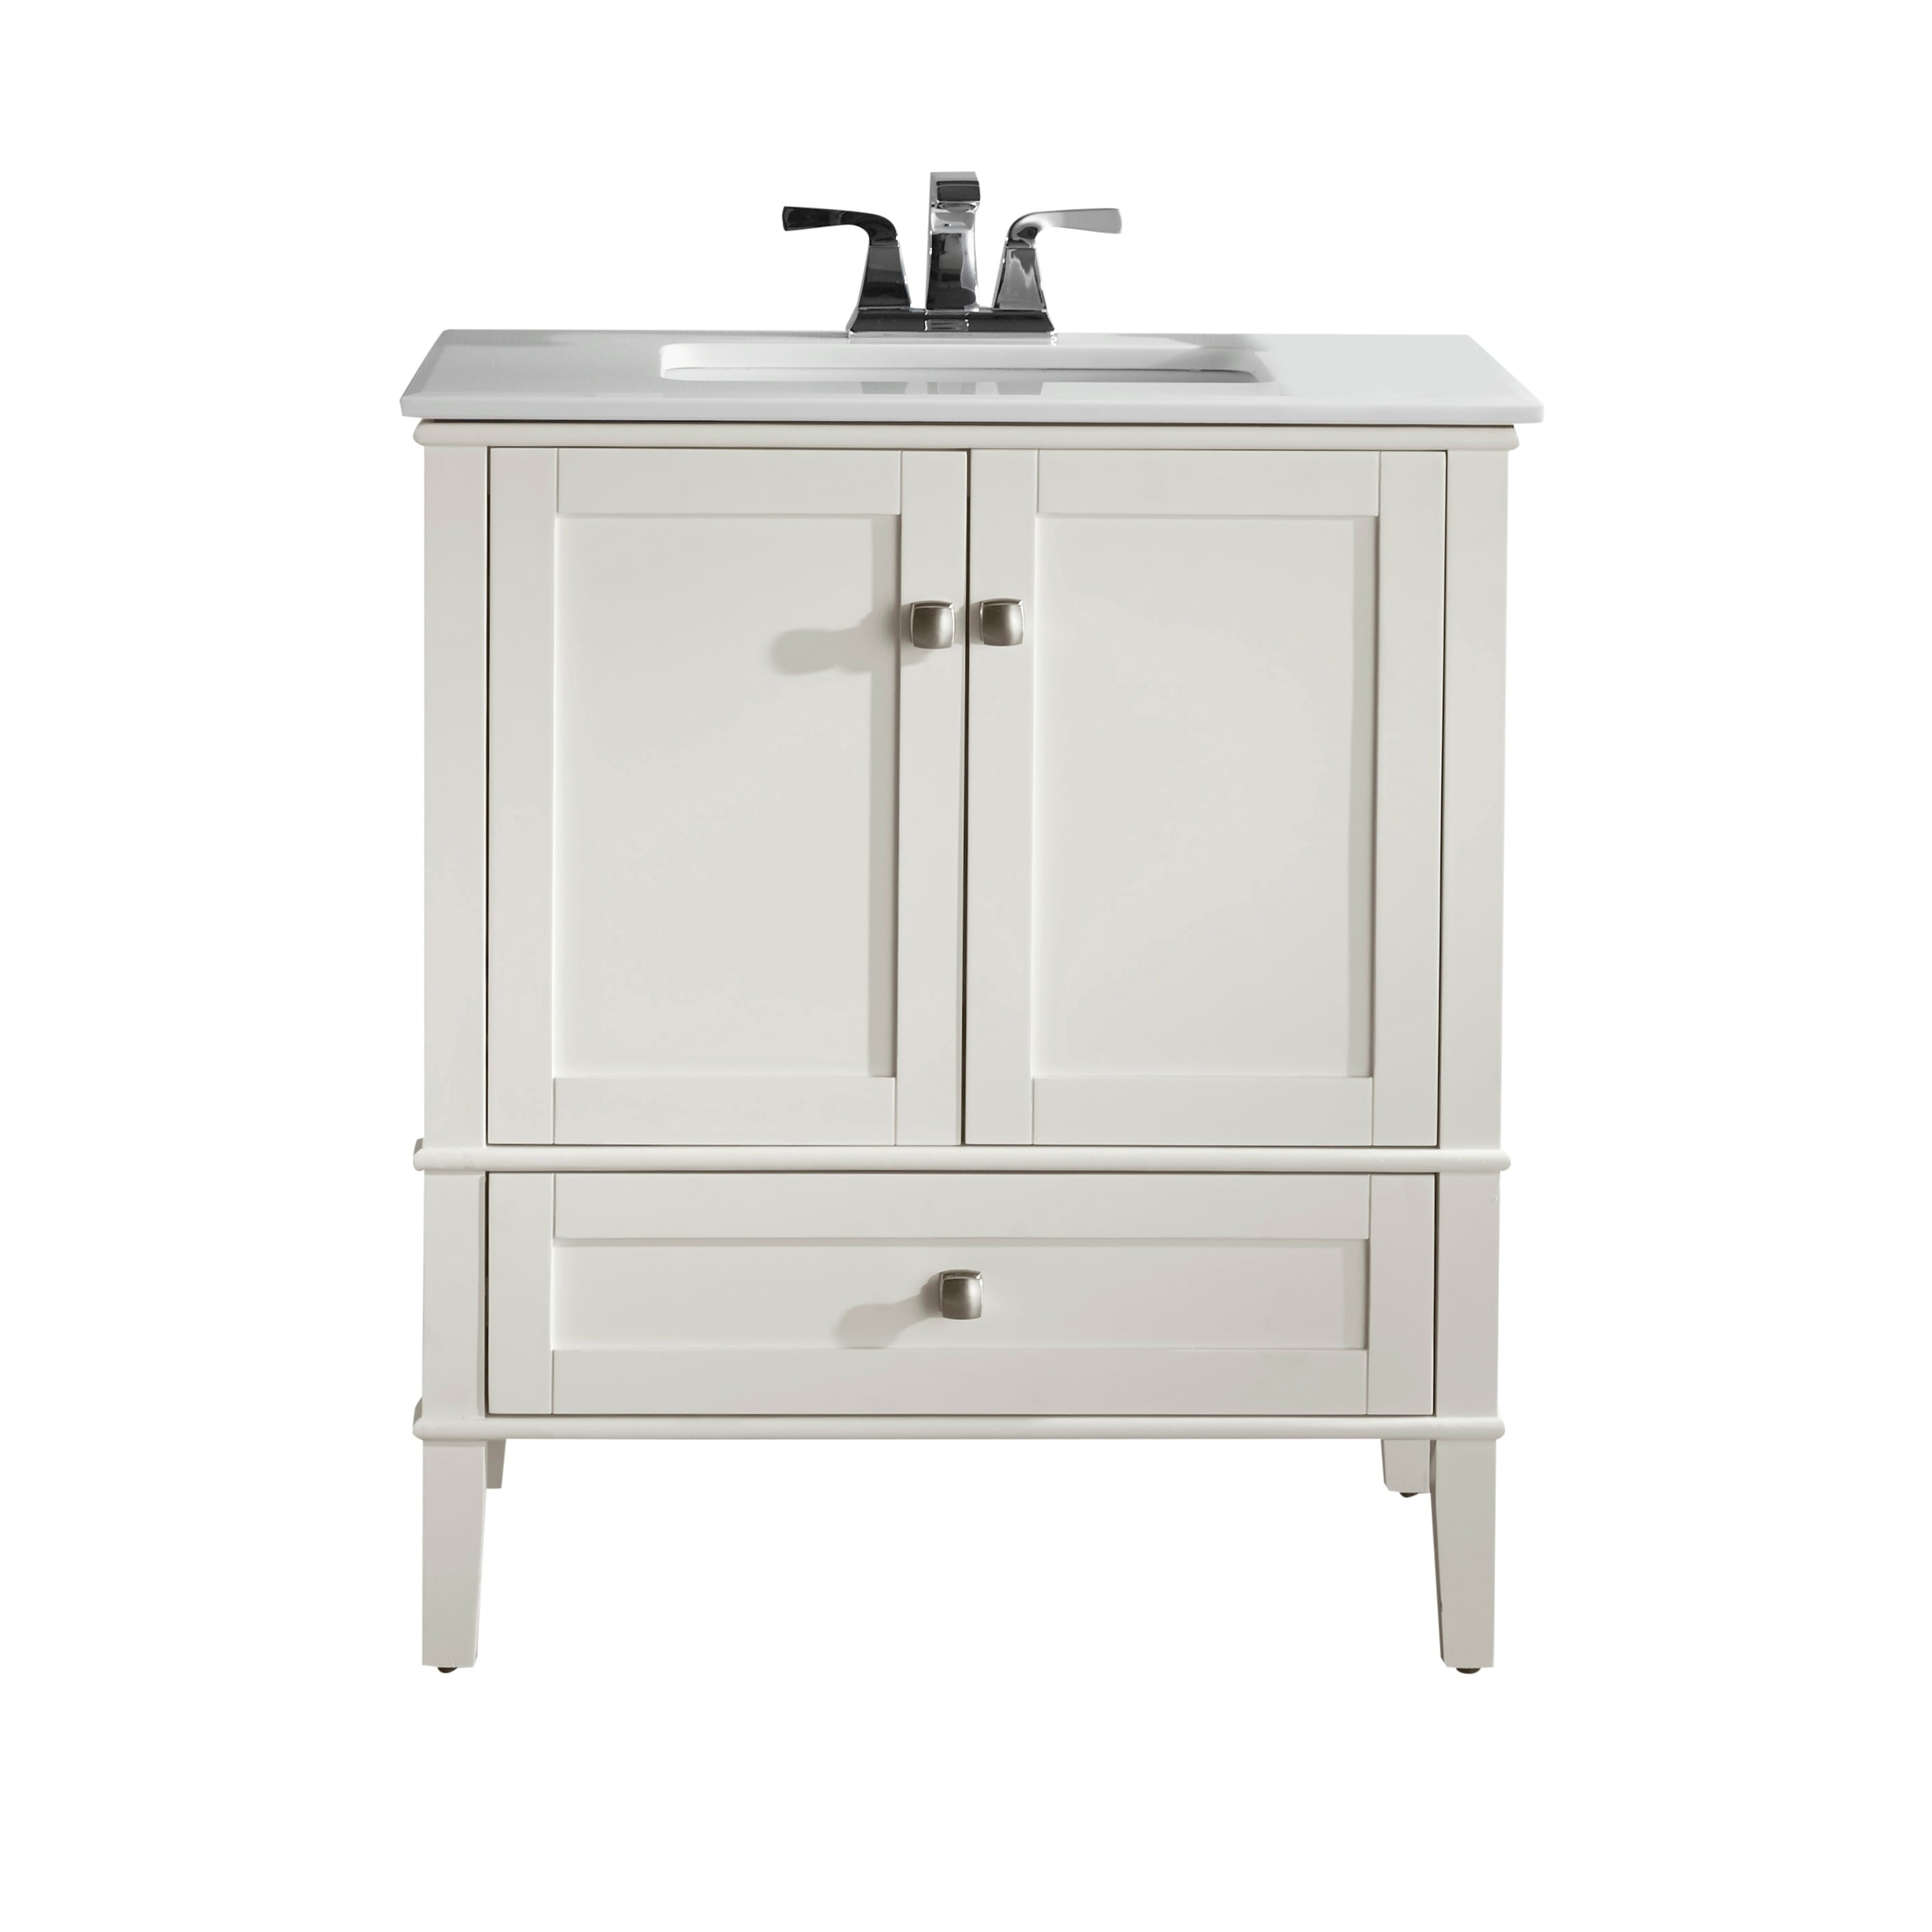 Wyndenhall Windham Soft White 2 Door 30 Inch Bath Vanity Set With Bottom Drawer And Quartz Marble Top On Free Shipping Today